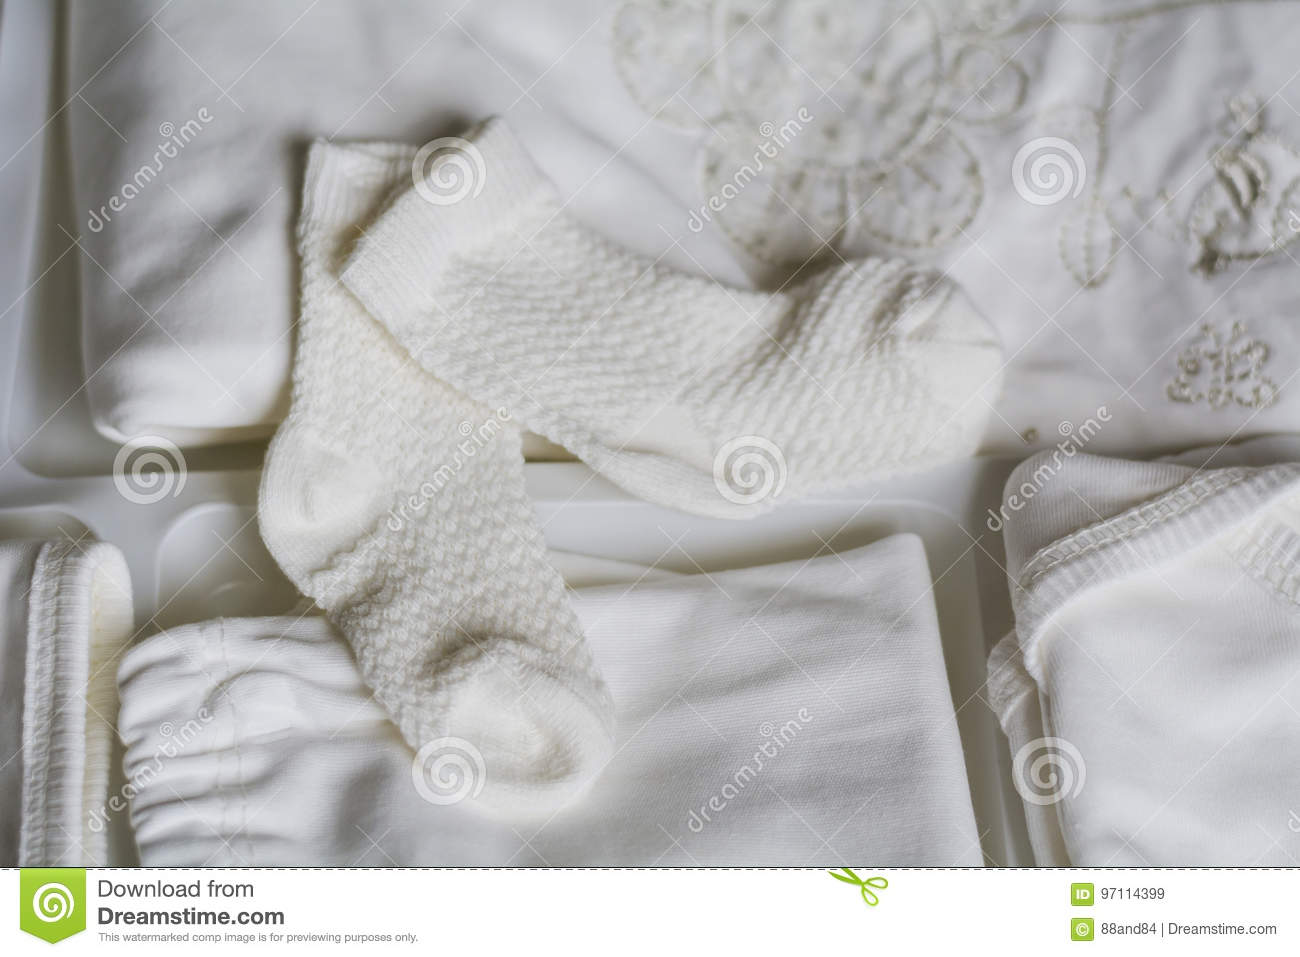 Set of white baby clothes